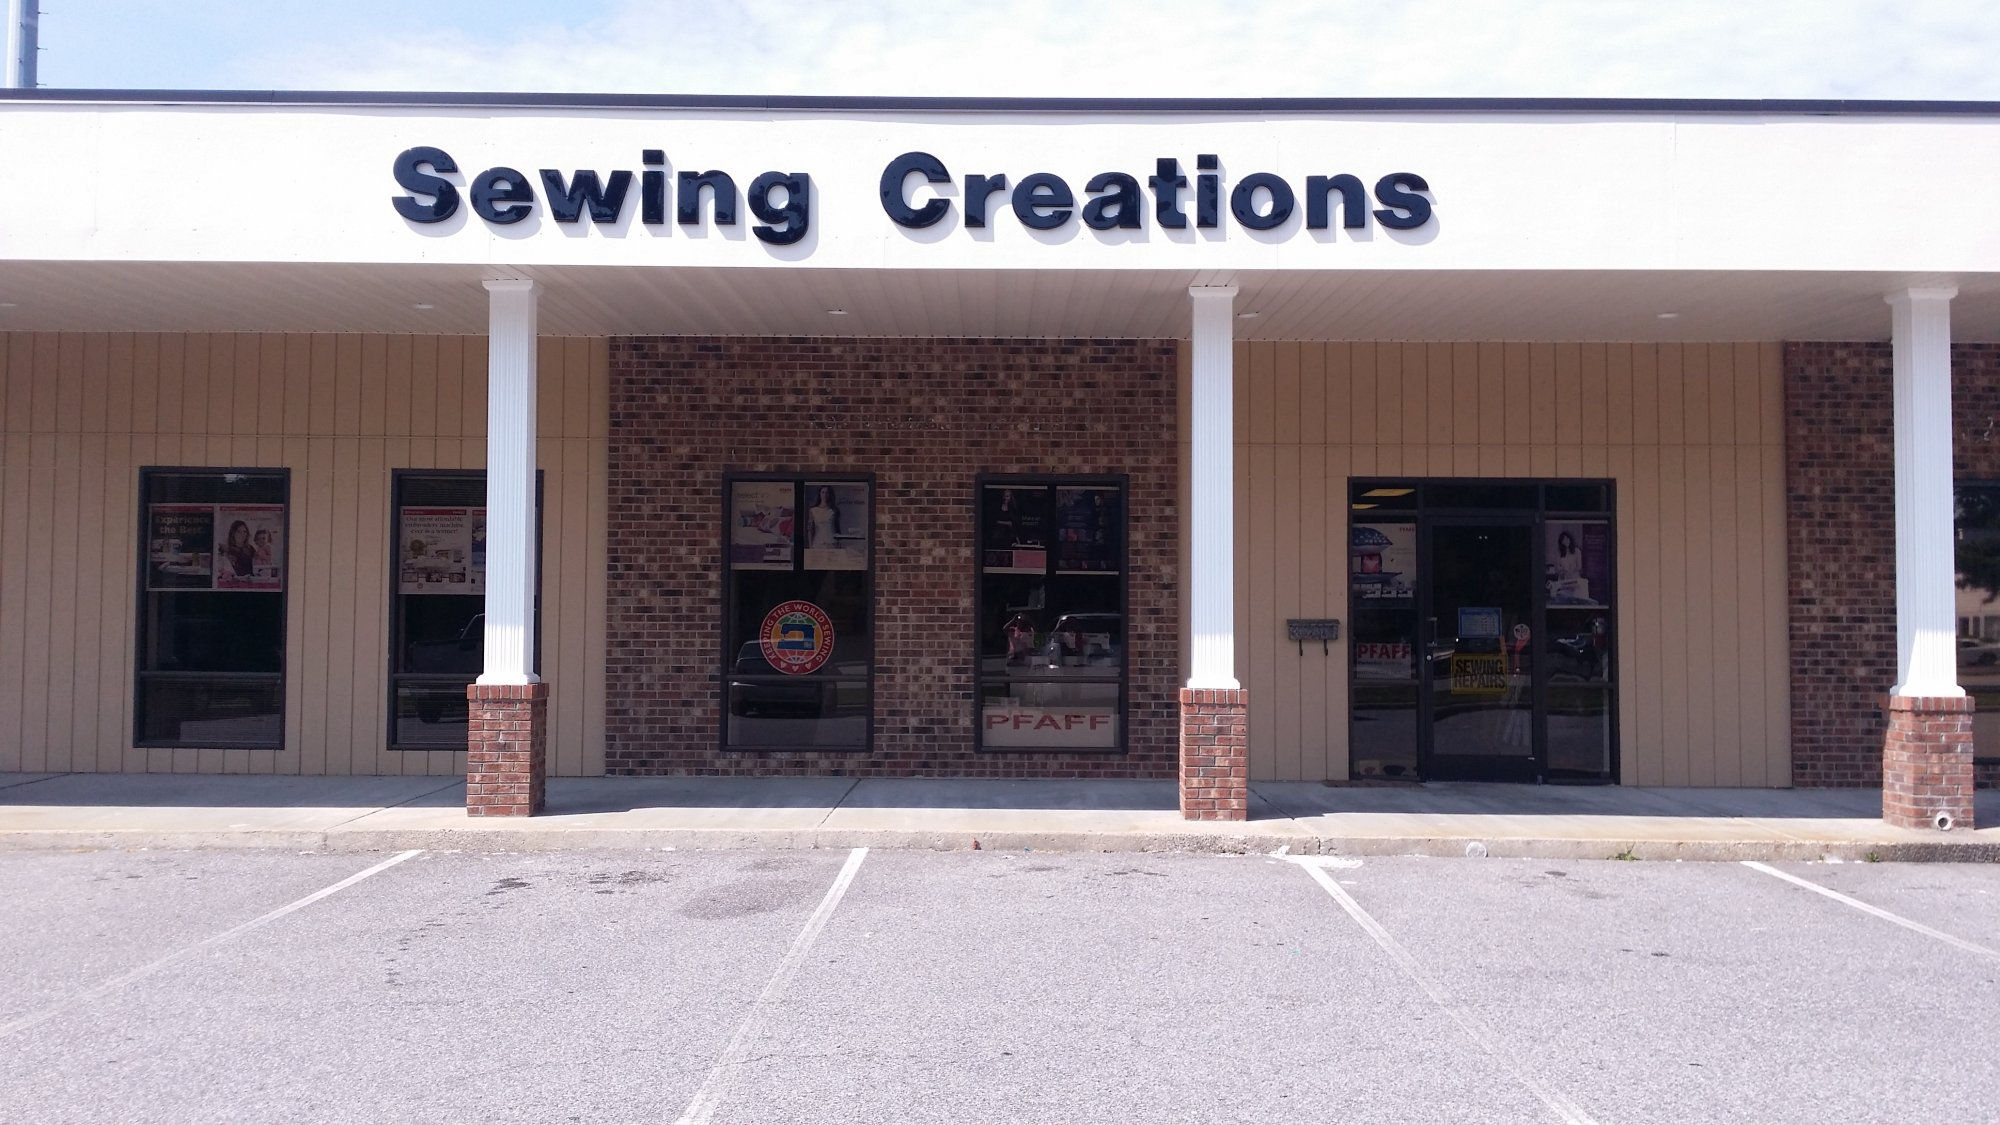 Sewing Creations Greensville Nc Sewing Machines Fabric